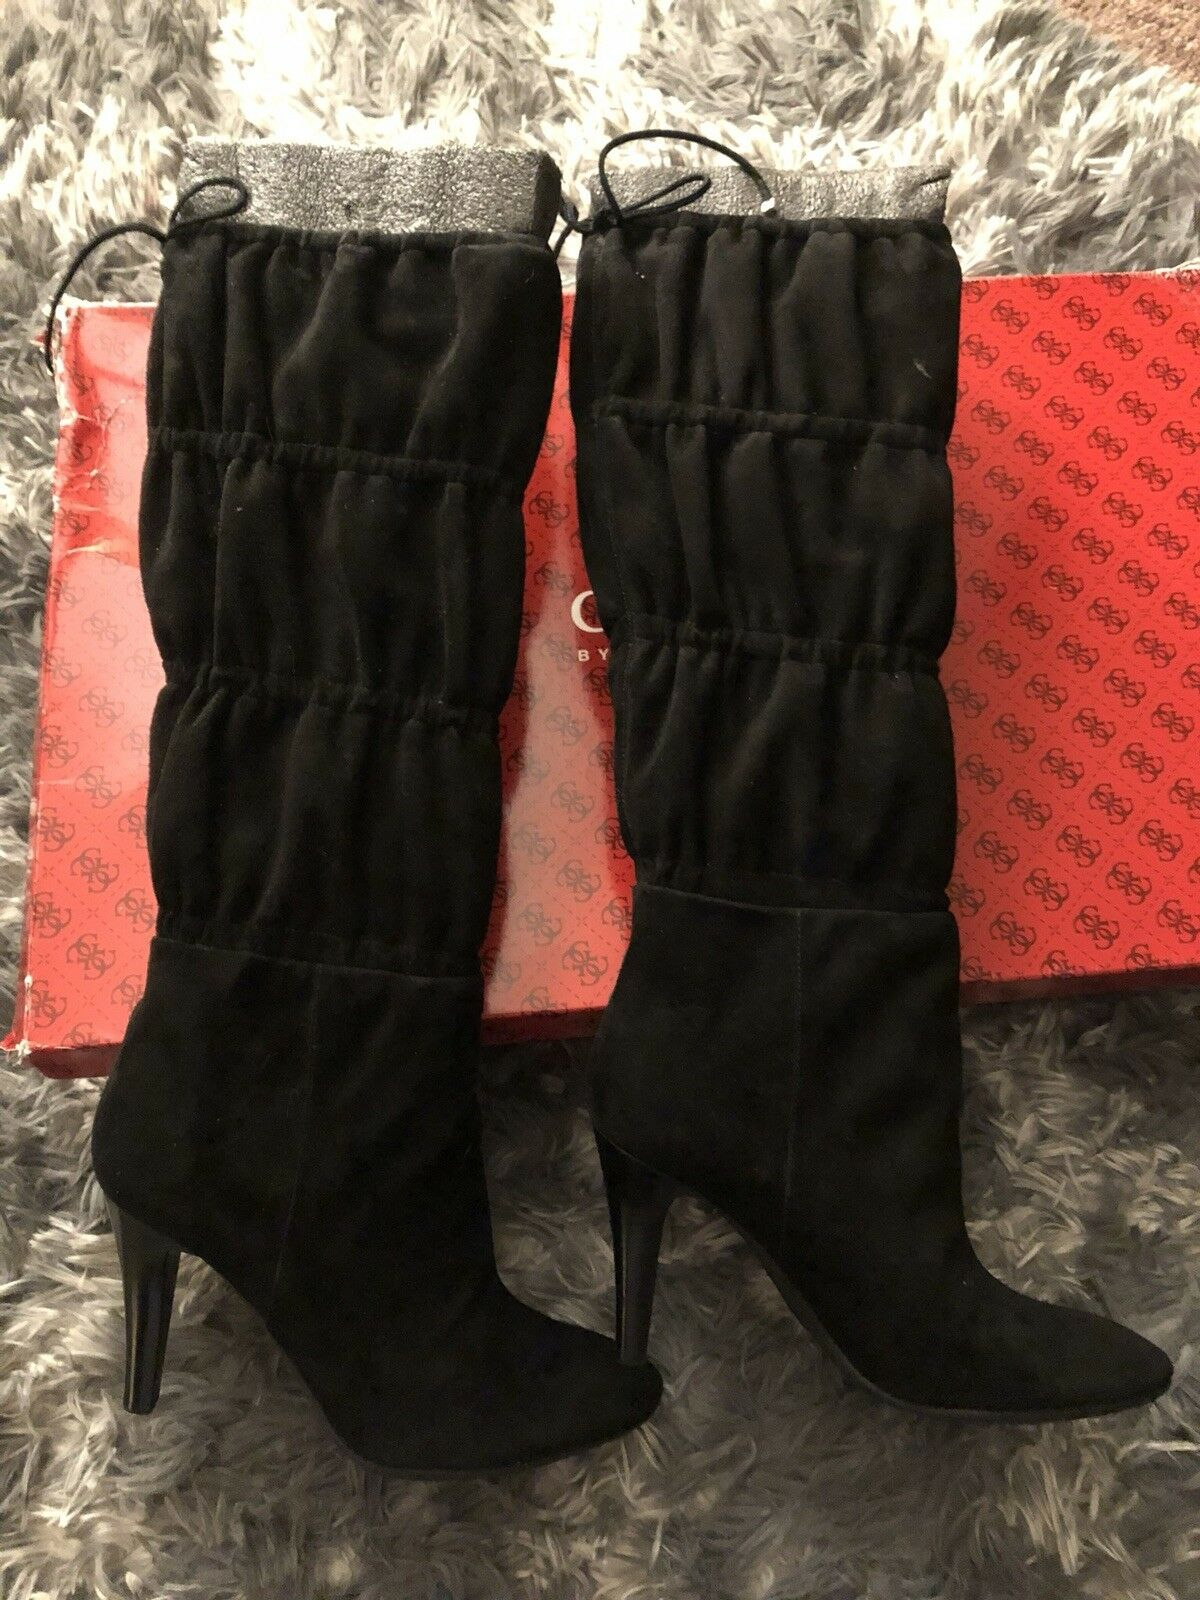 ️ SALE  ️ NEW NEW NEW GUESS BY MARCIANO Black LEATHER SUEDE KNEE BOOTS SIZE 8 8M RARE e8d334